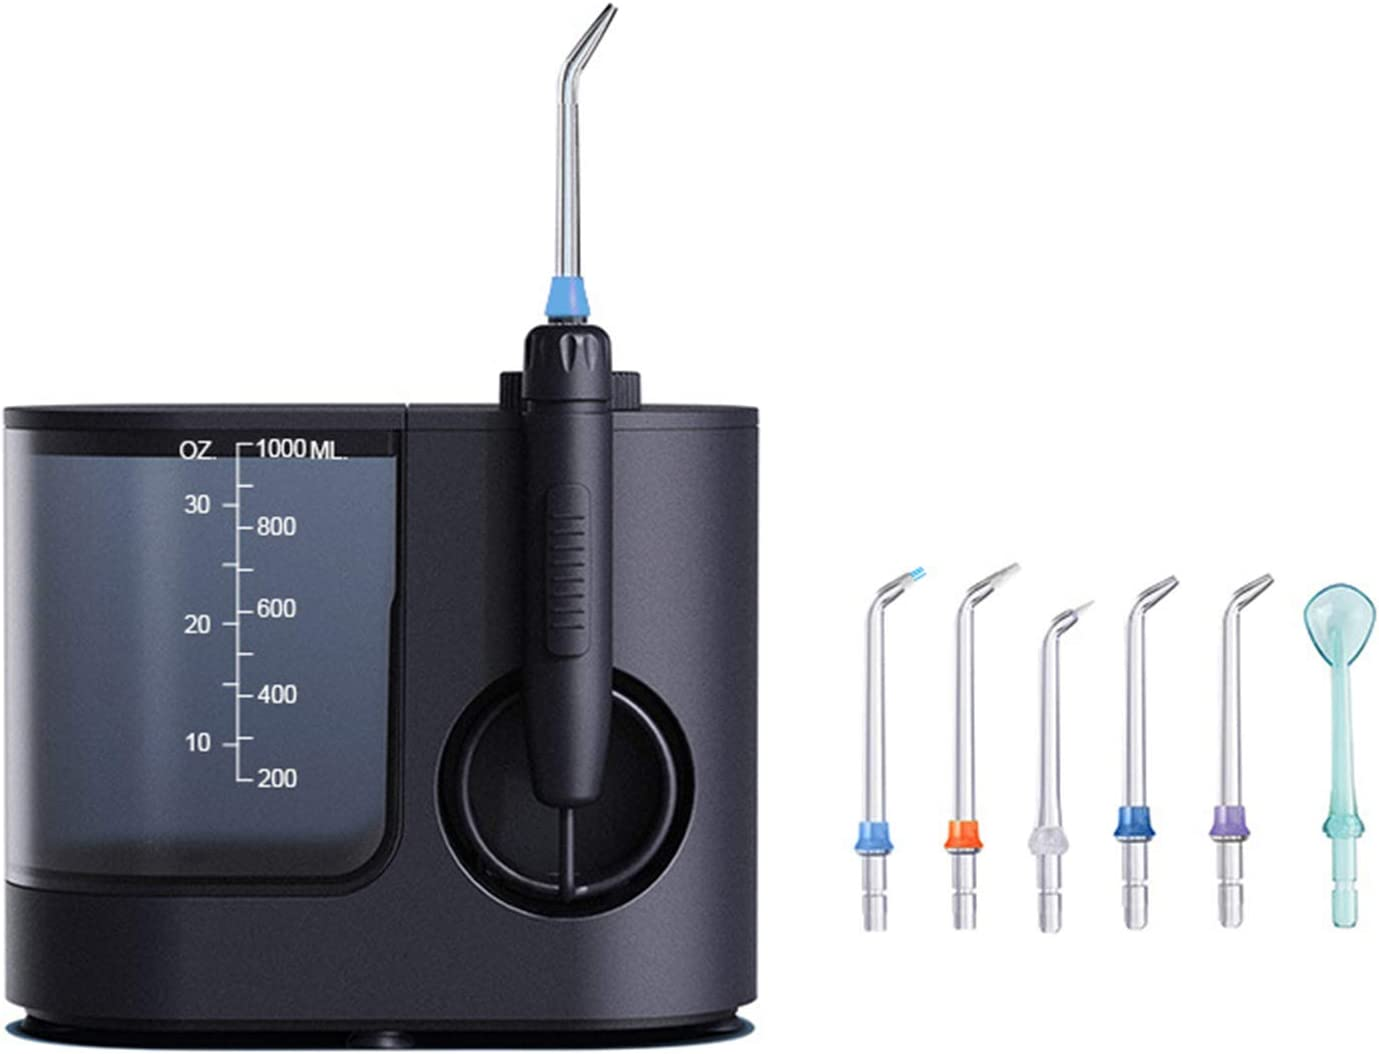 AWJK Water Flosser Max 81% OFF for Teeth Ora 1000ML All stores are sold Portable Flossers